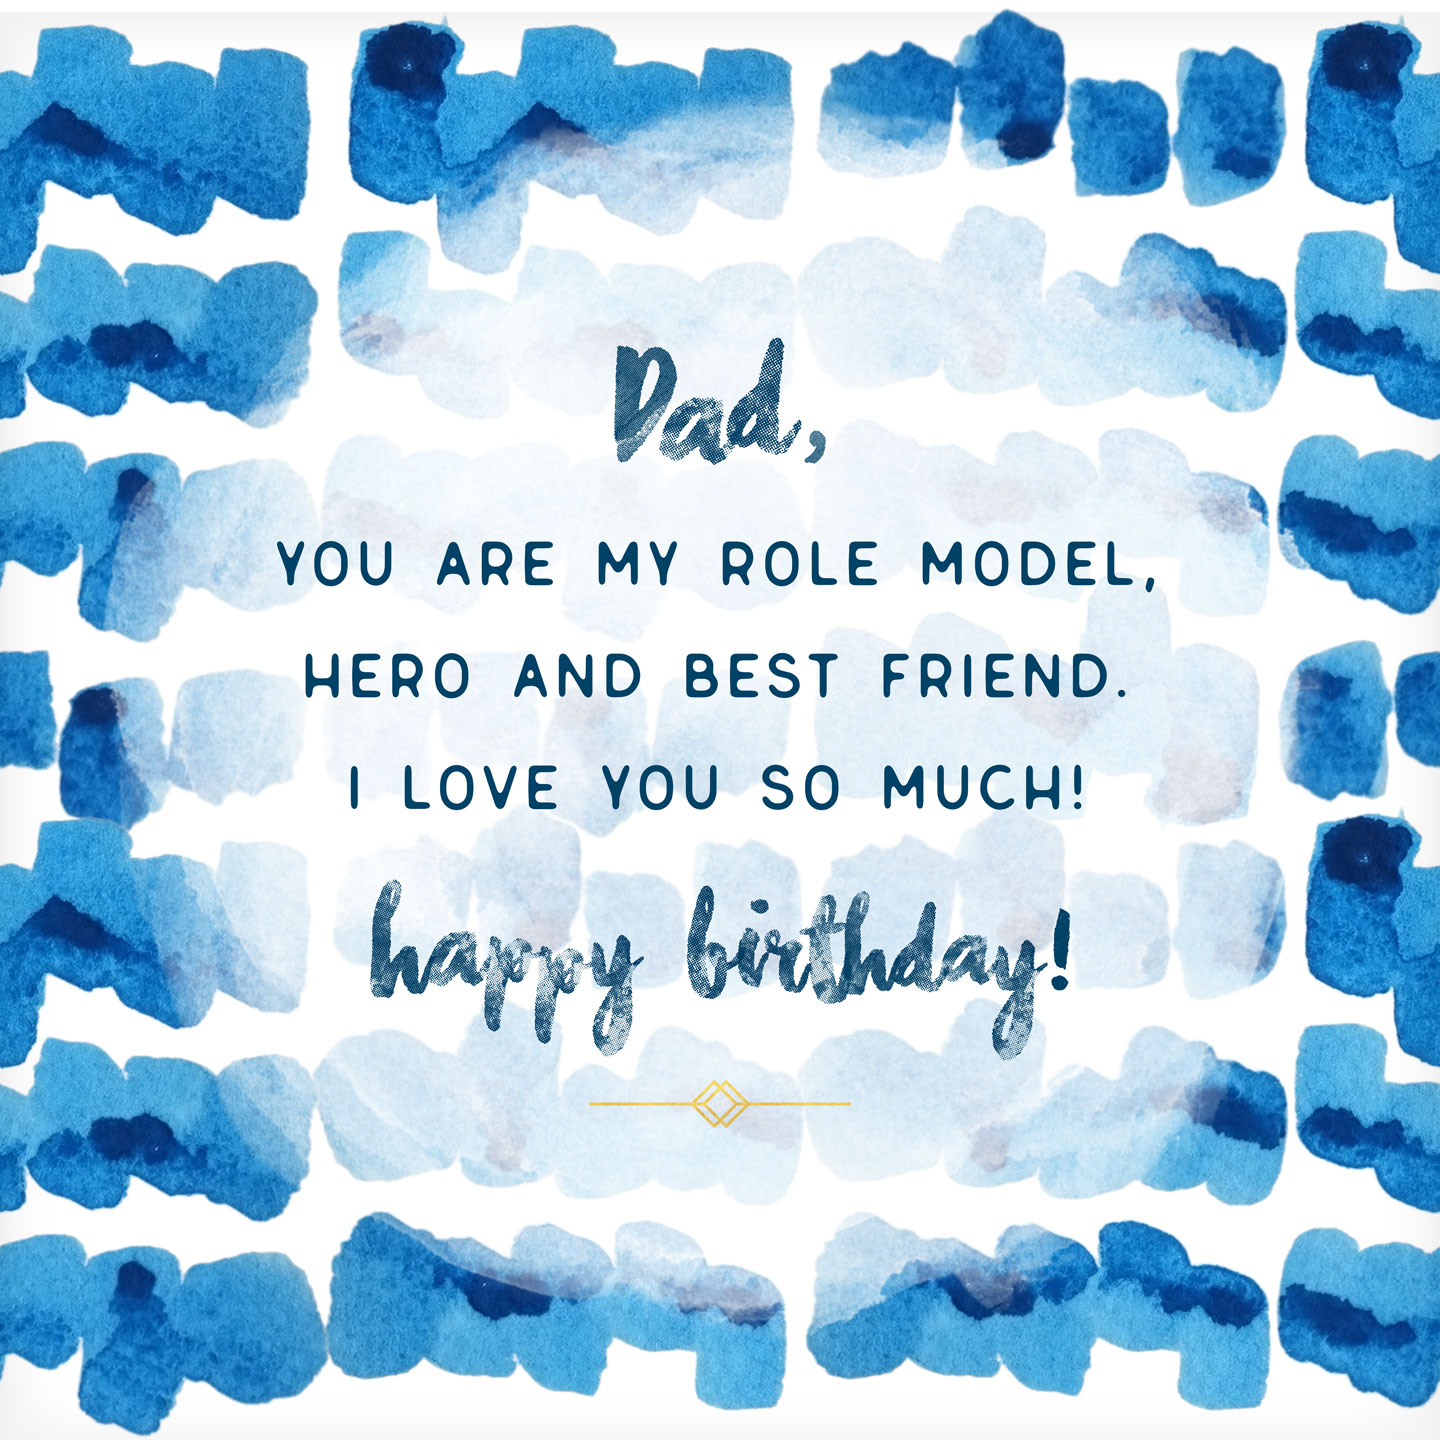 Birthday Card Ideas For Dad From Daughter What To Write In A Birthday Card 48 Birthday Messages And Wishes